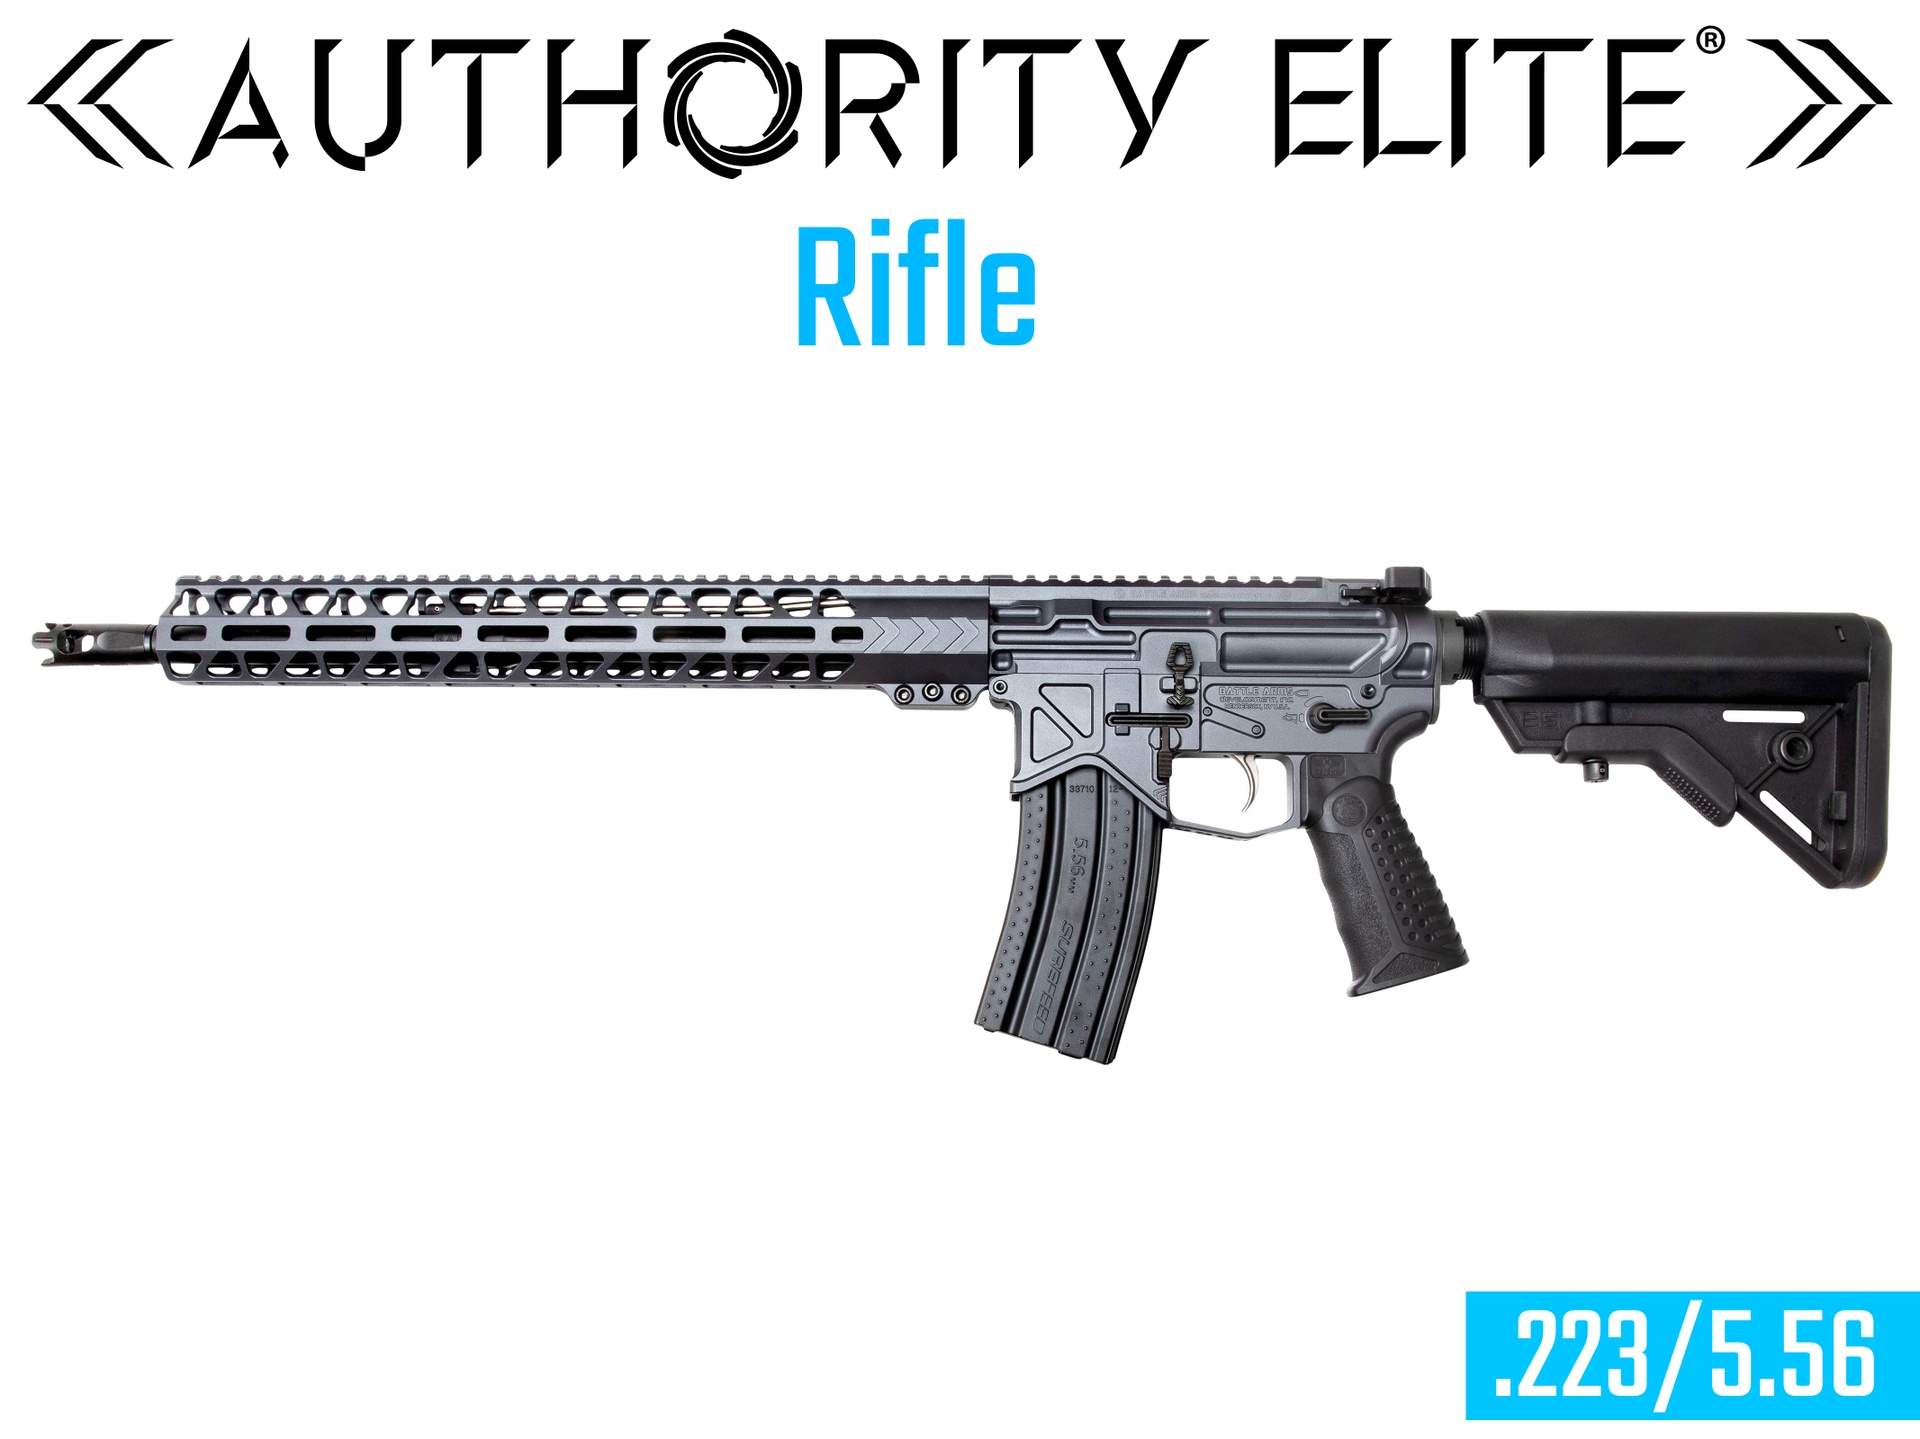 AUTHORITY™ ELITE RIFLE